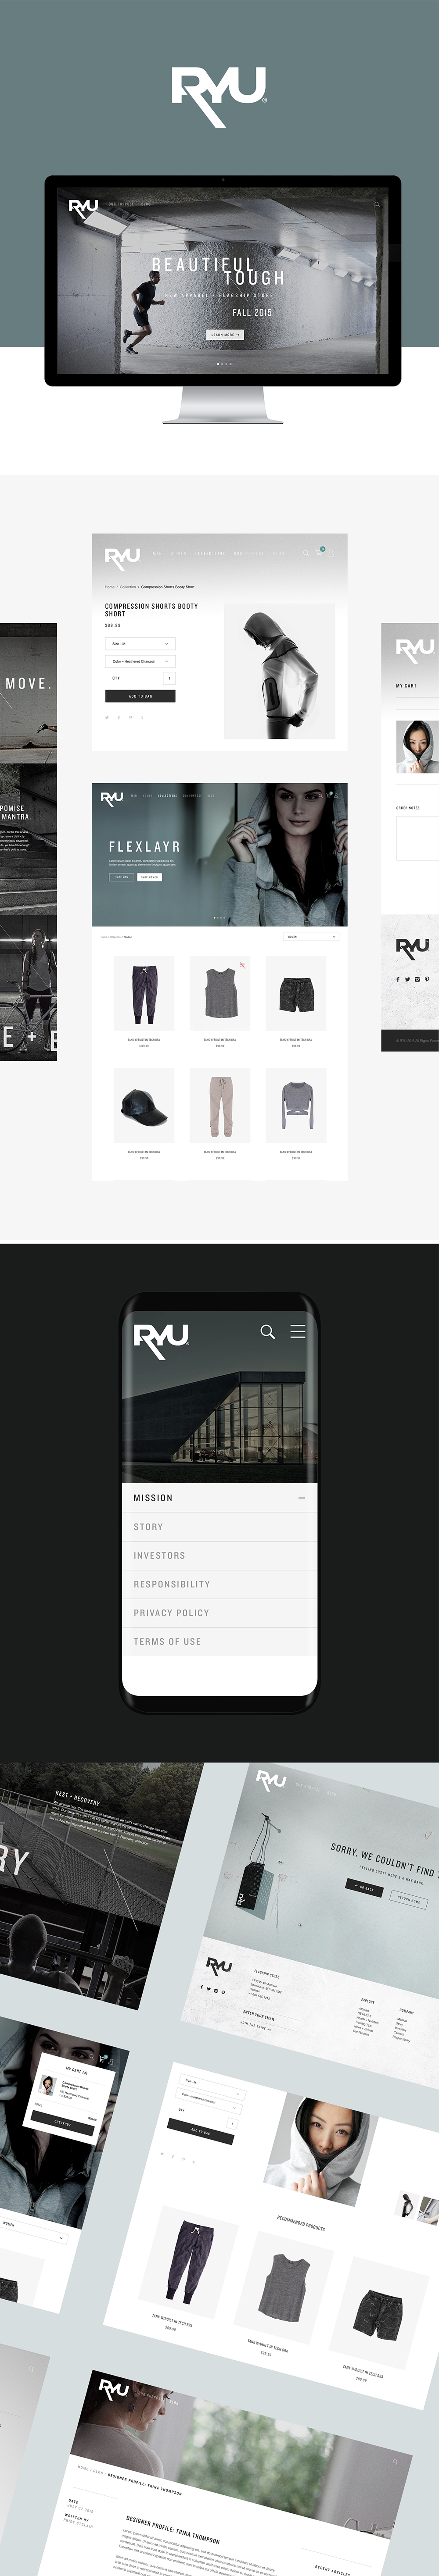 fitness-apparel-website-redesign-pitch-RYU-above-below.jpg